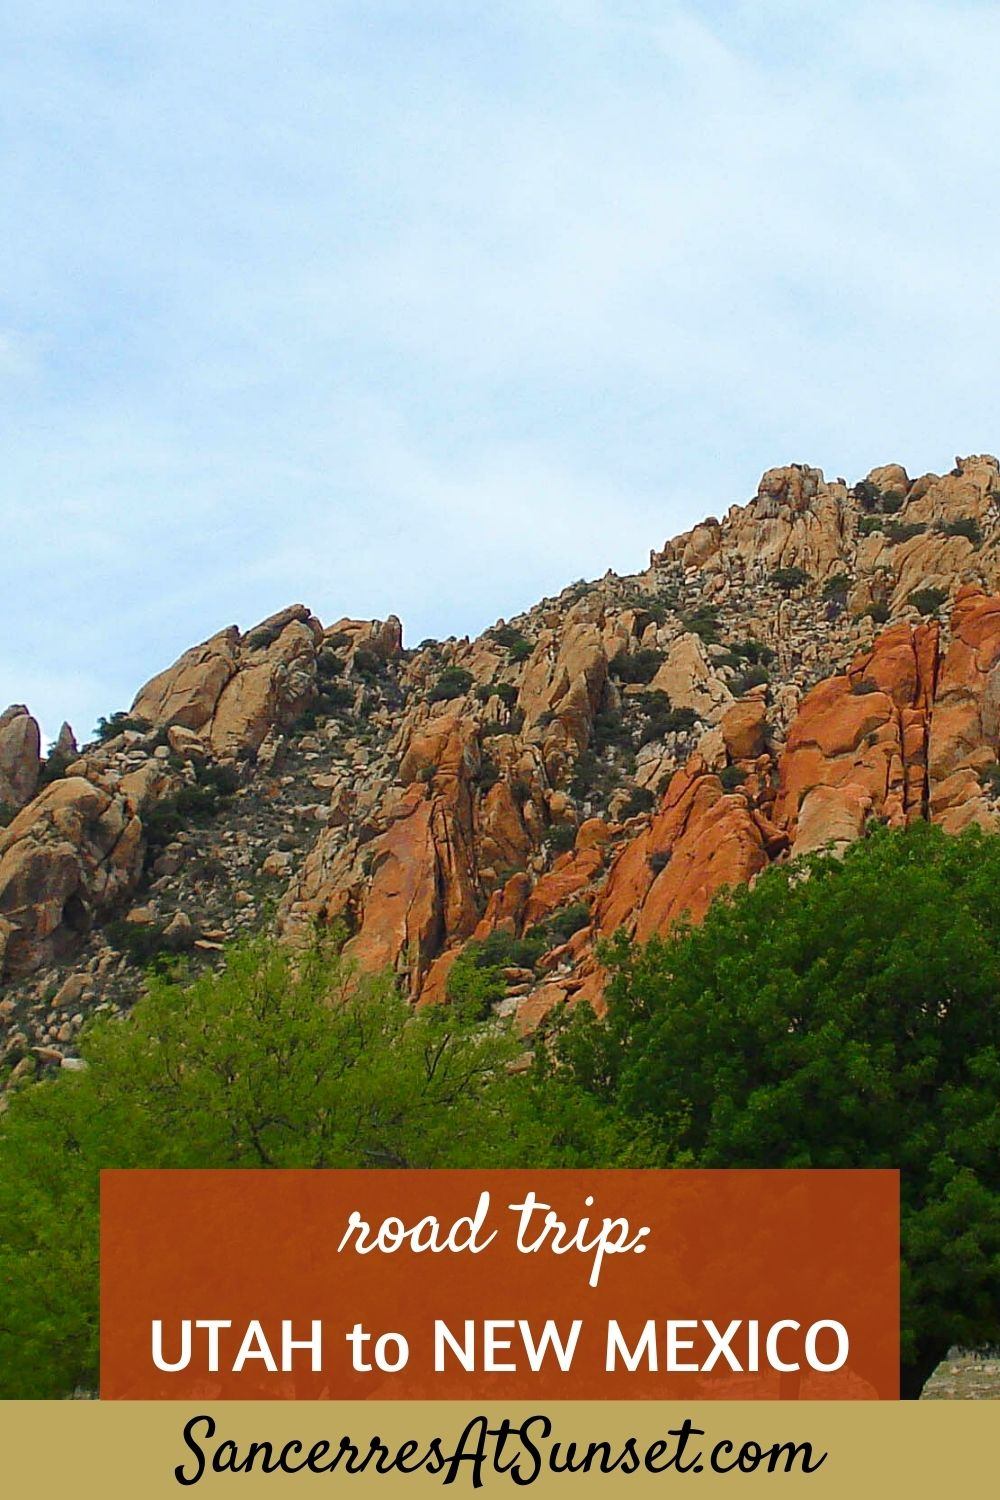 Utah to New Mexico:  Cross-Country Road Trip, Part 3